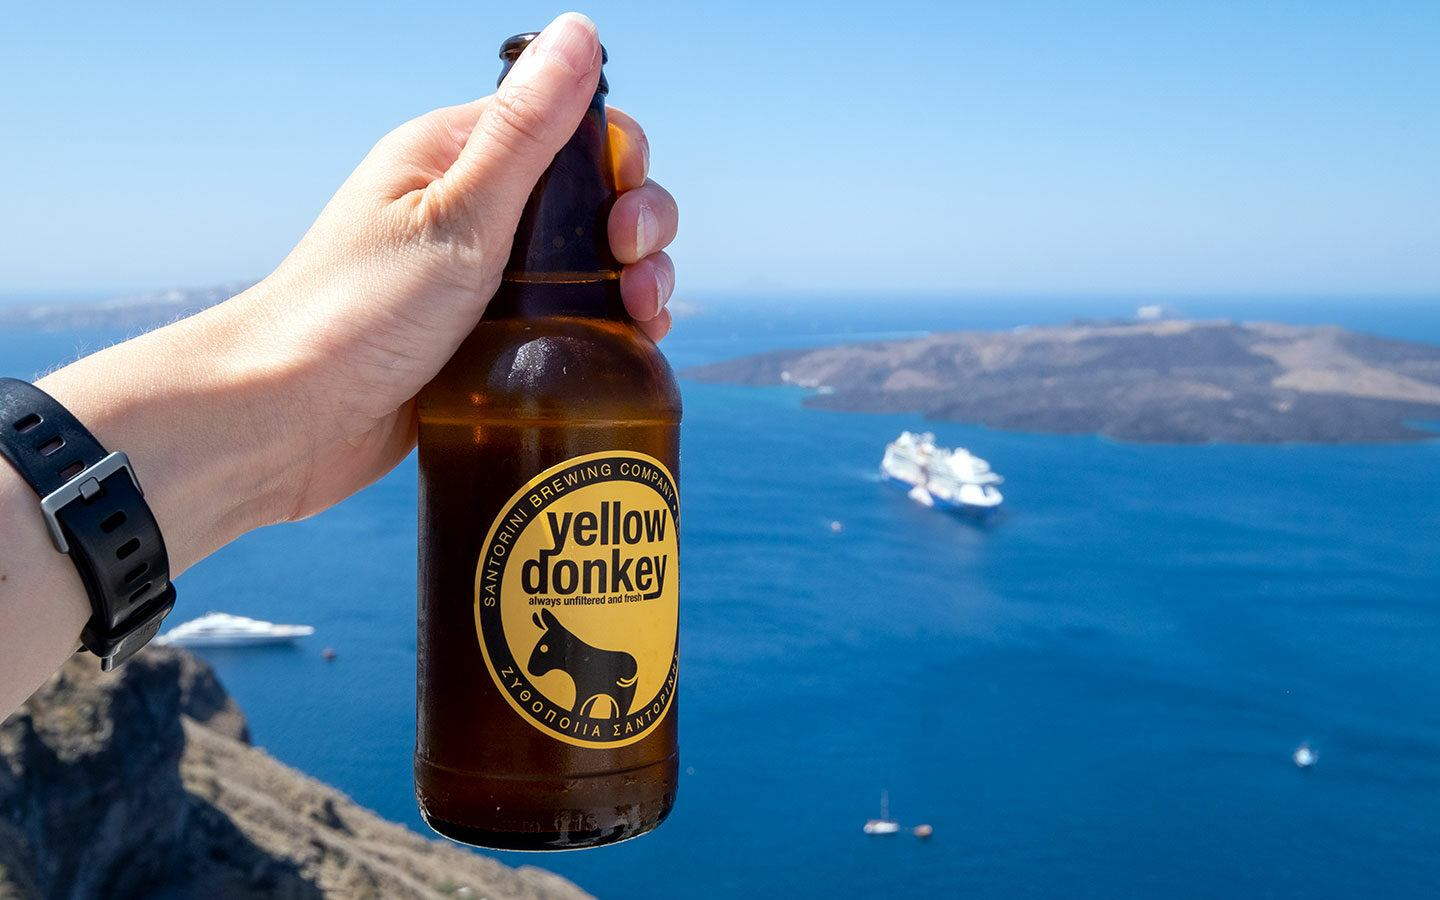 A Yellow Donkey beer from craft brewers Santorini Brewing Company